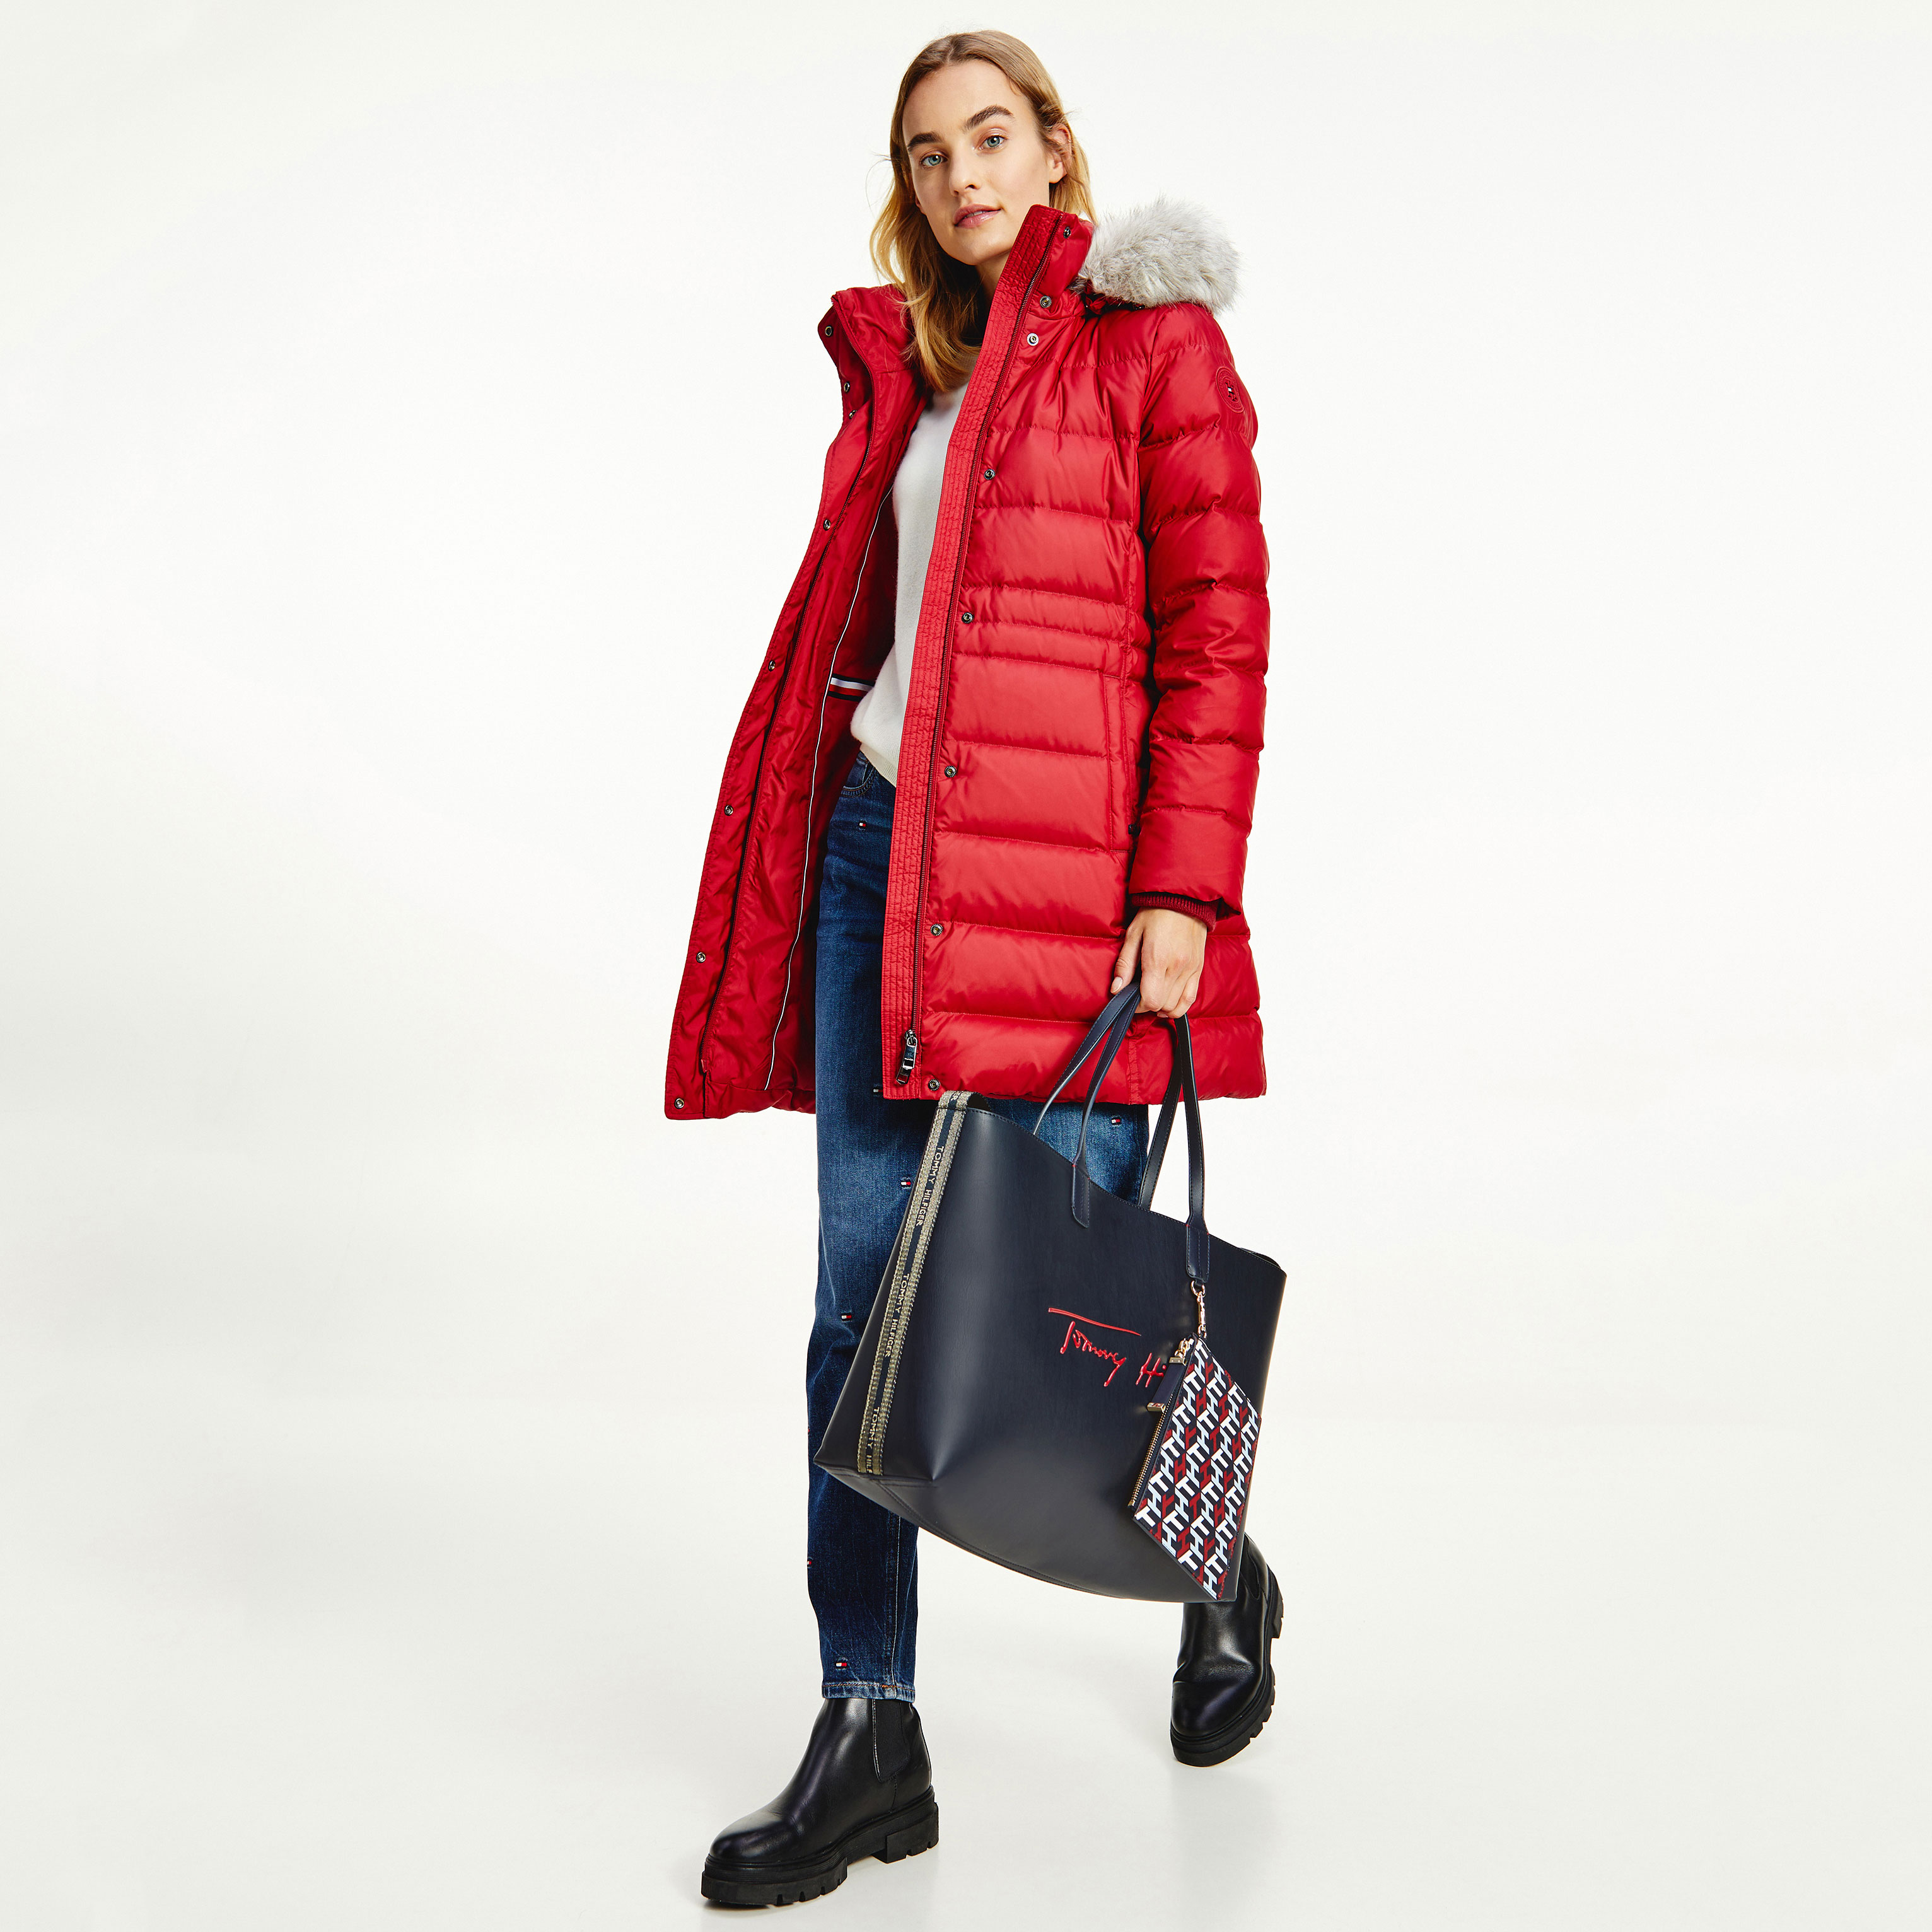 TOMMY HILFIGER Marroquinería Bolso Iconic Tommy Tote Sign AW0AW10457-DW5